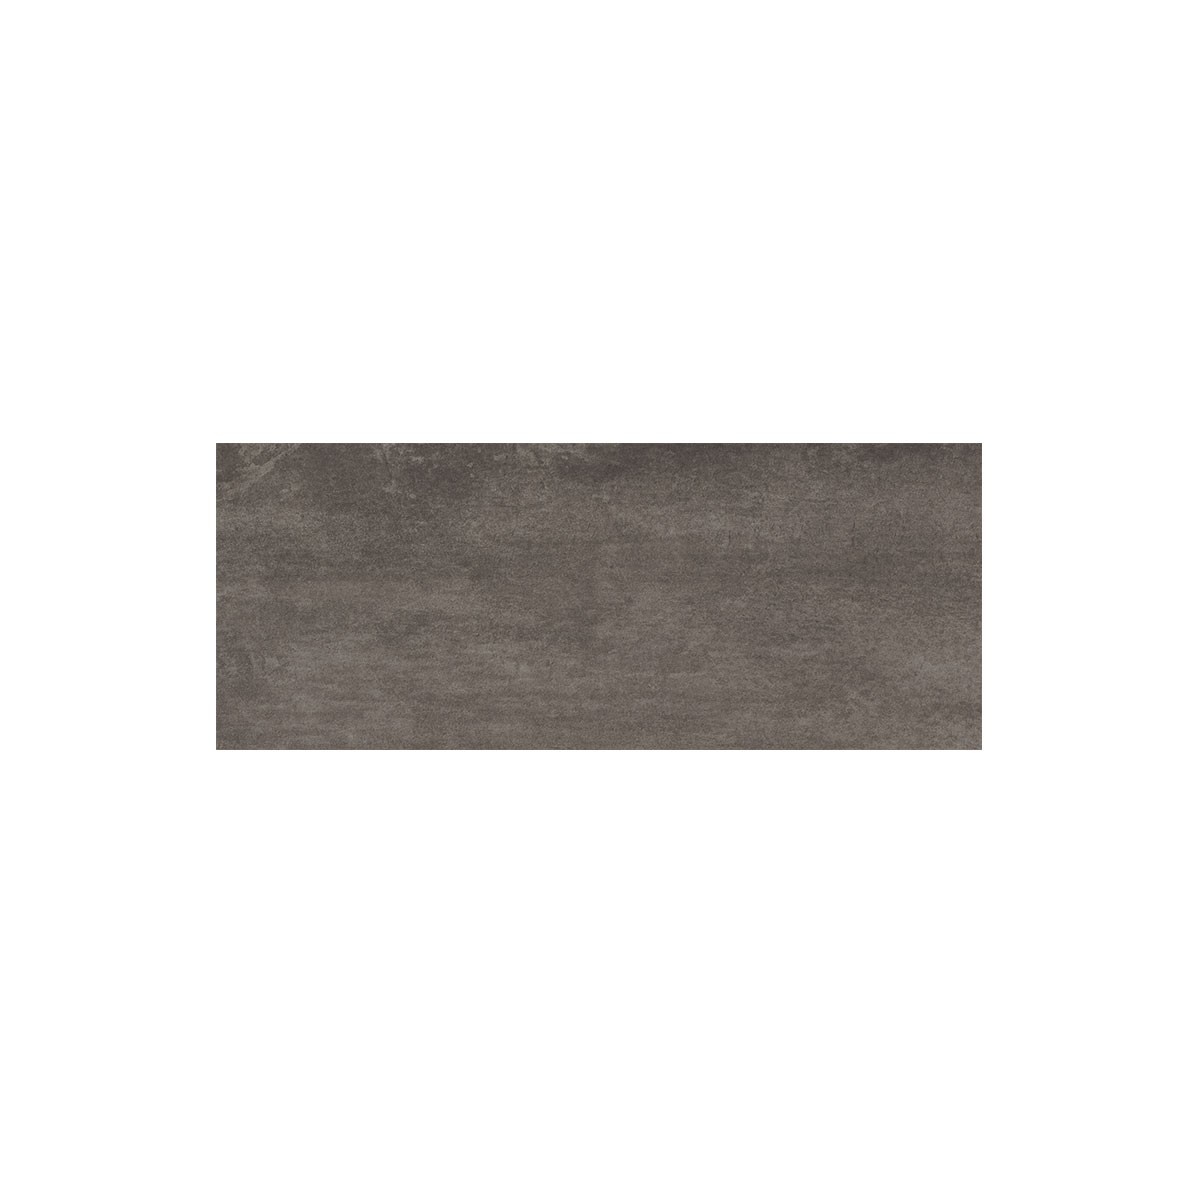 DECORAPORT NWS Wall Panel, Brushed Concrete, 3.97'' x7.85'' (NBC-05) (Sample)